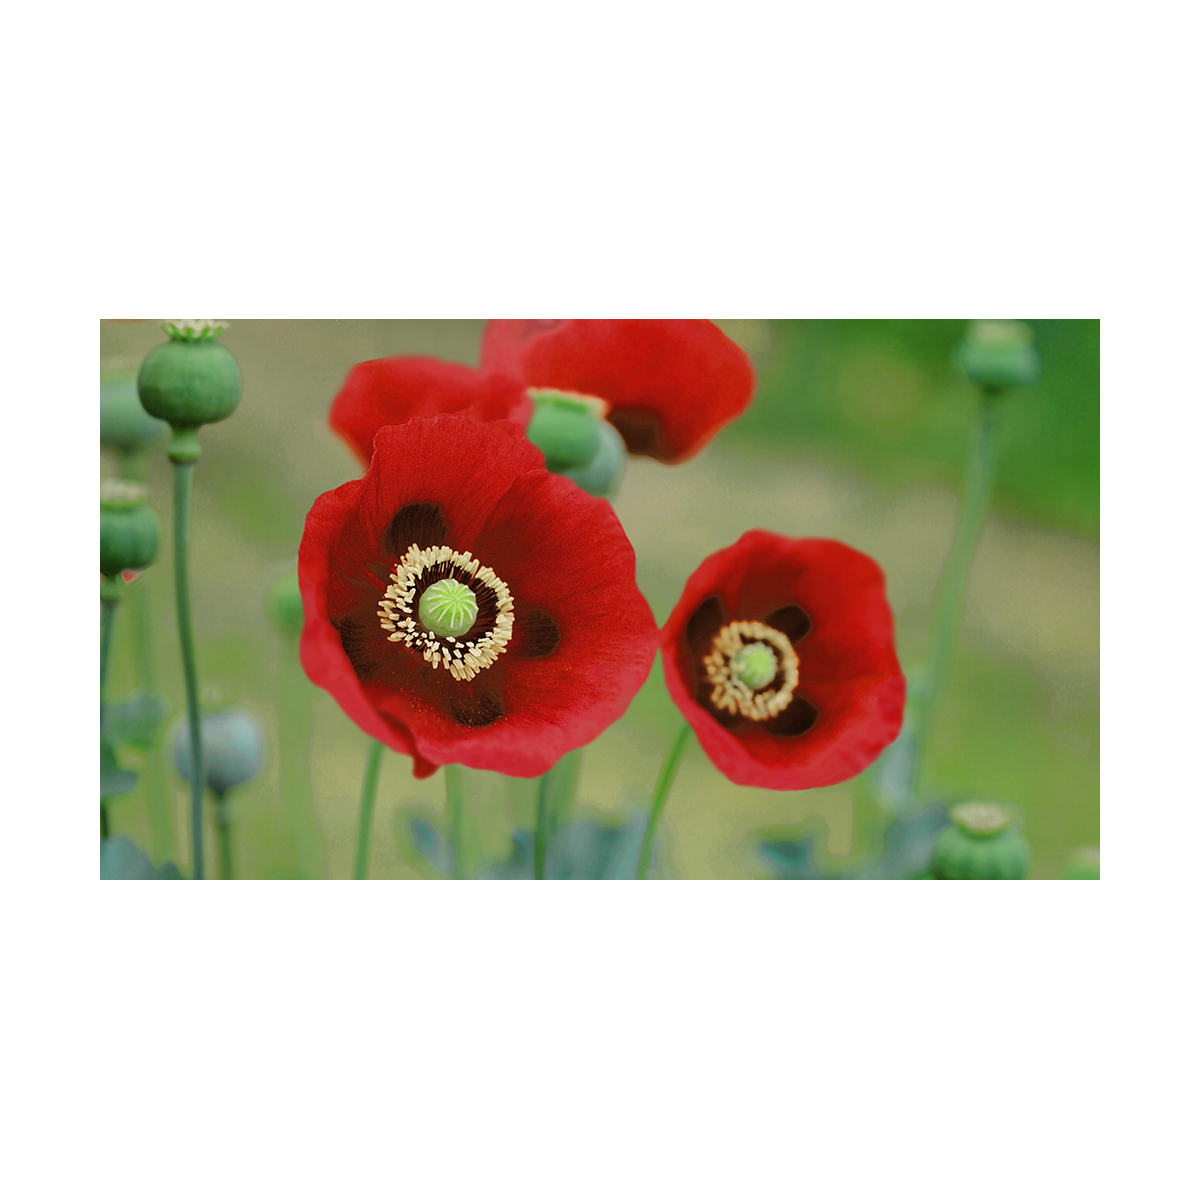 A photorealistic drawing of opium poppies that have blossomed red, which typically do not blossom red. Red poppies typically represent loss in conflict and this meant to represent those lost in the opioid epidemic